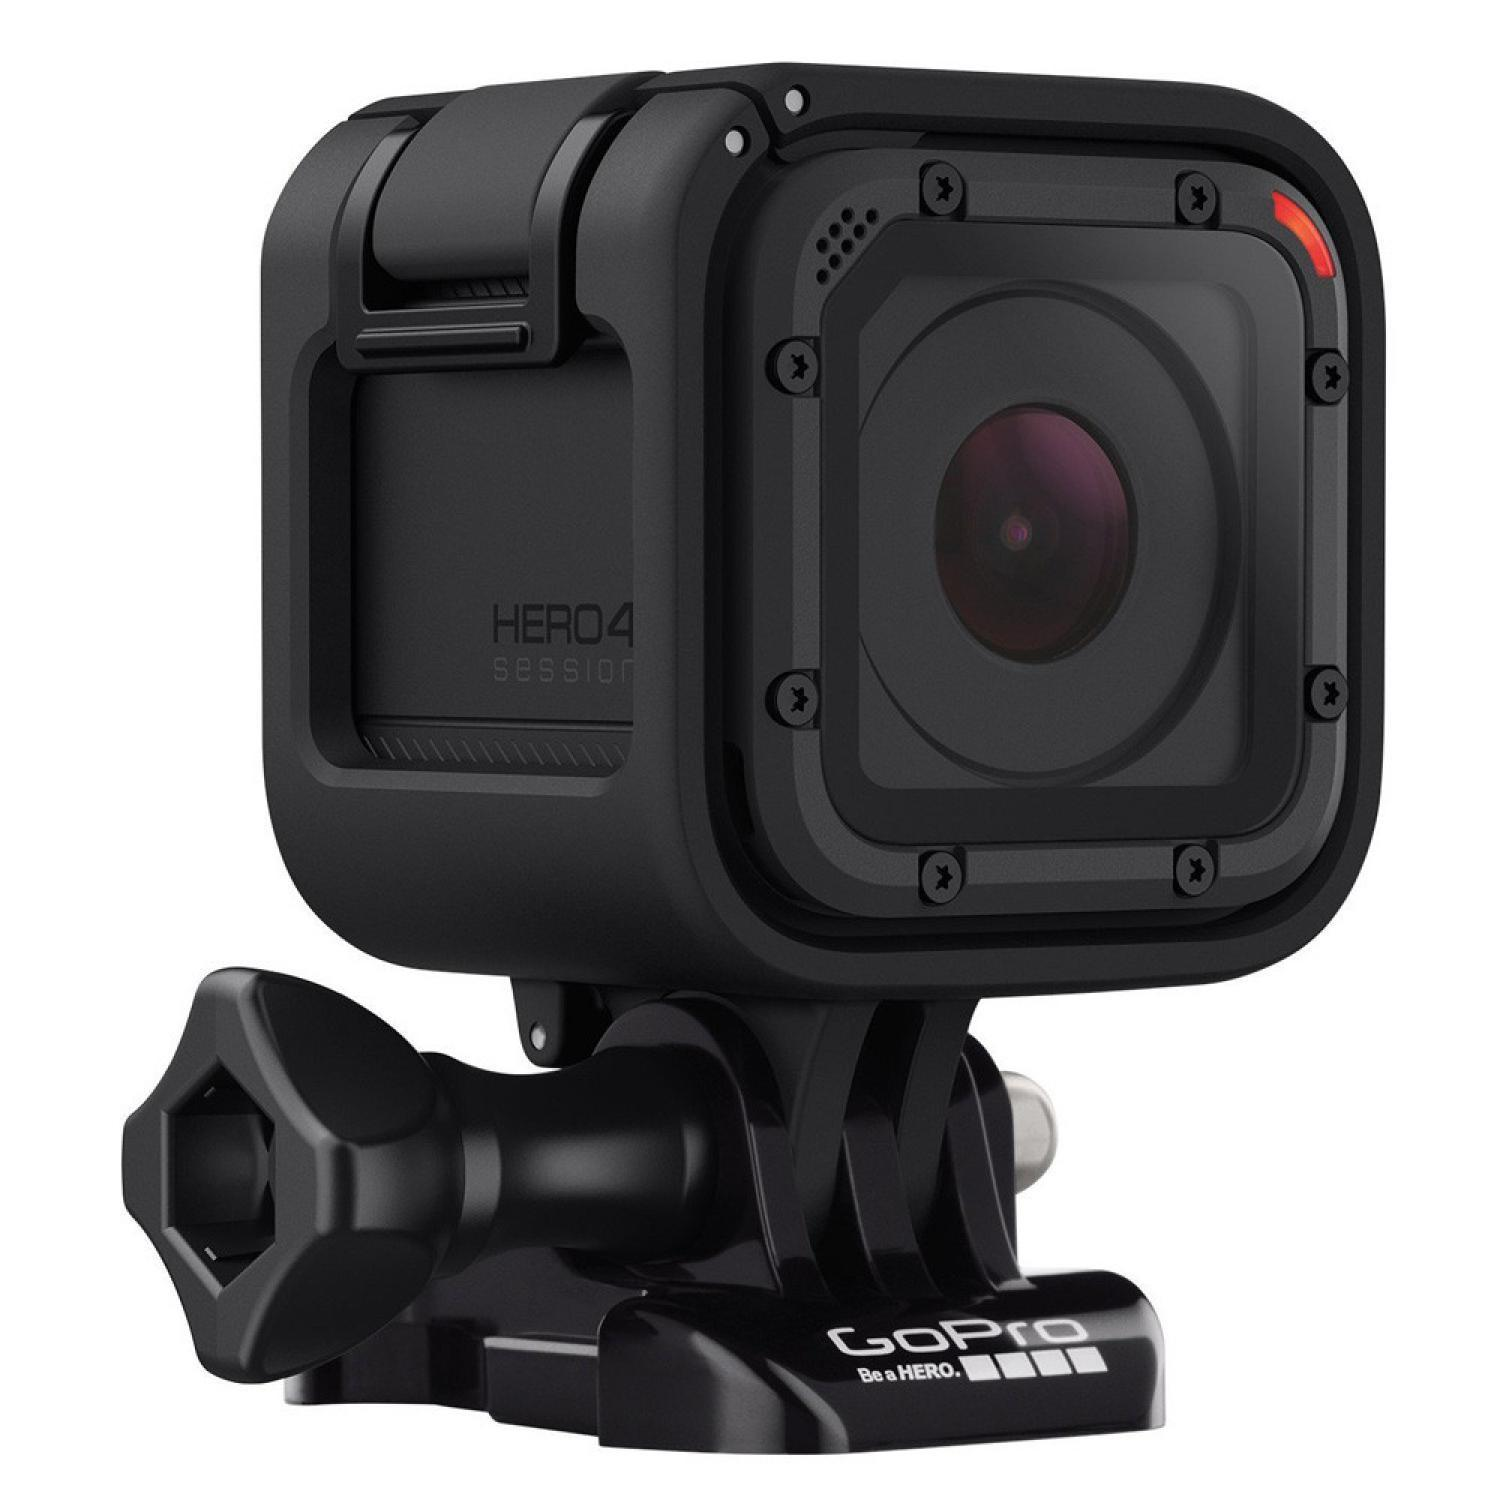 Buy Sell Cheapest Gopro Camera Best Quality Product Deals Complete Set For Bike Helmet Brica B Pro Ampamp Xiaomi Yi Hero 4 Session Standard Edition Action Actioncamera